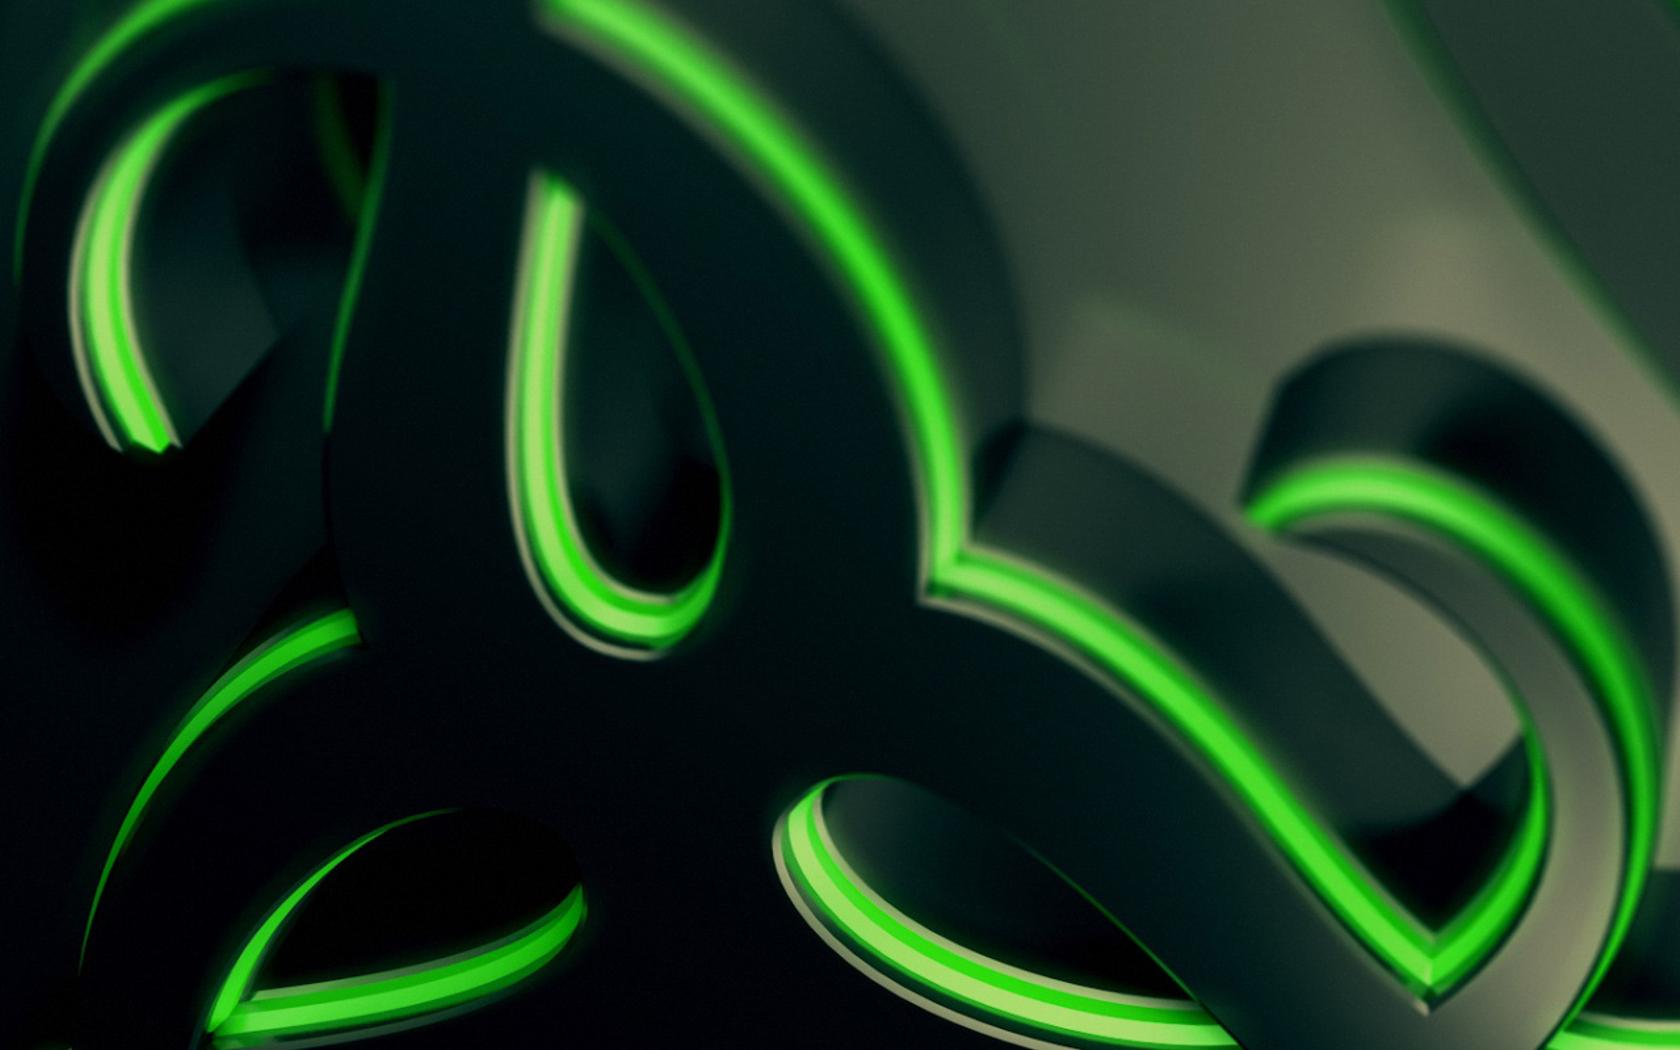 Download Wallpaper 1680x1050 Abstract Green And Black